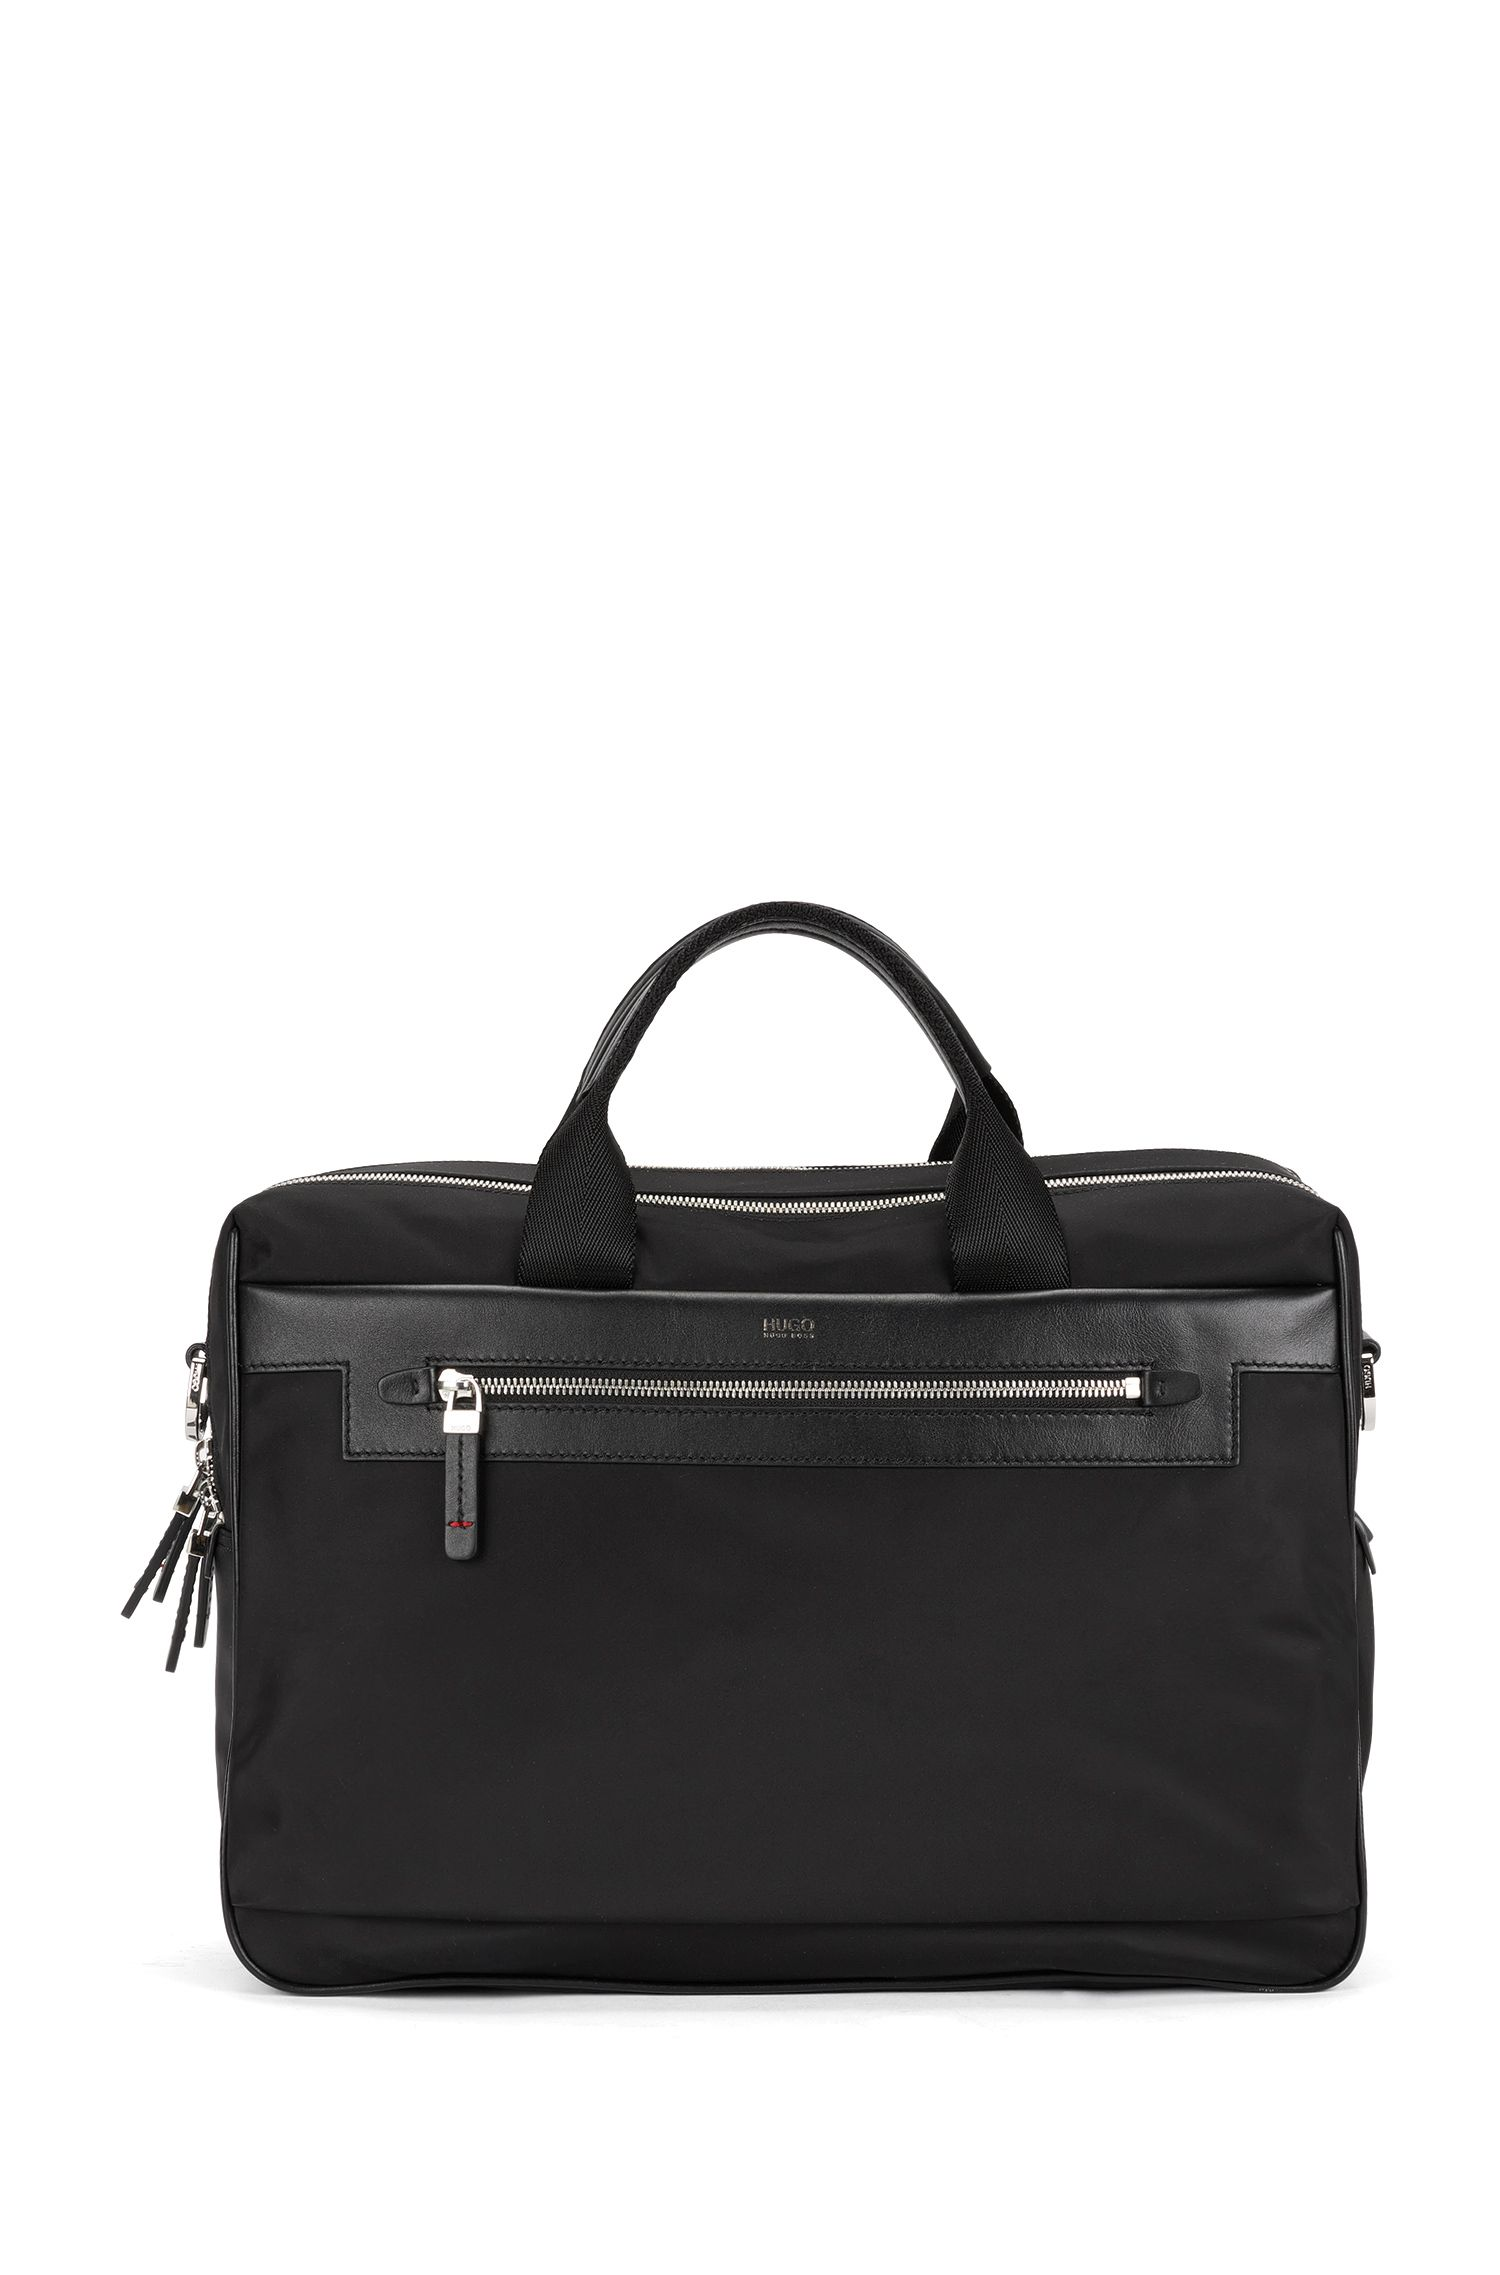 Double work bag in nylon with leather trim